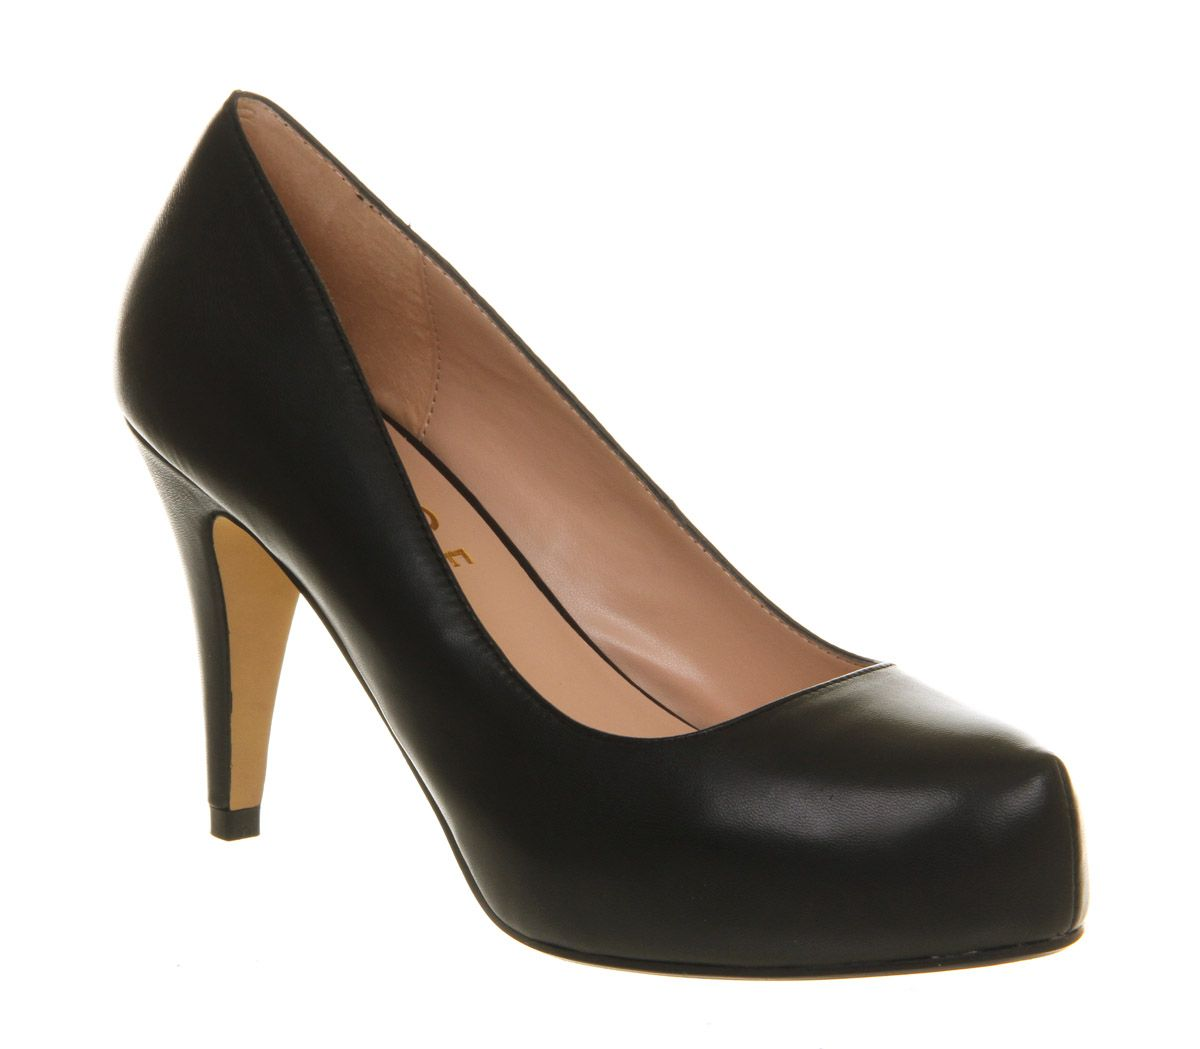 Daphne leather mid heel platform court shoes